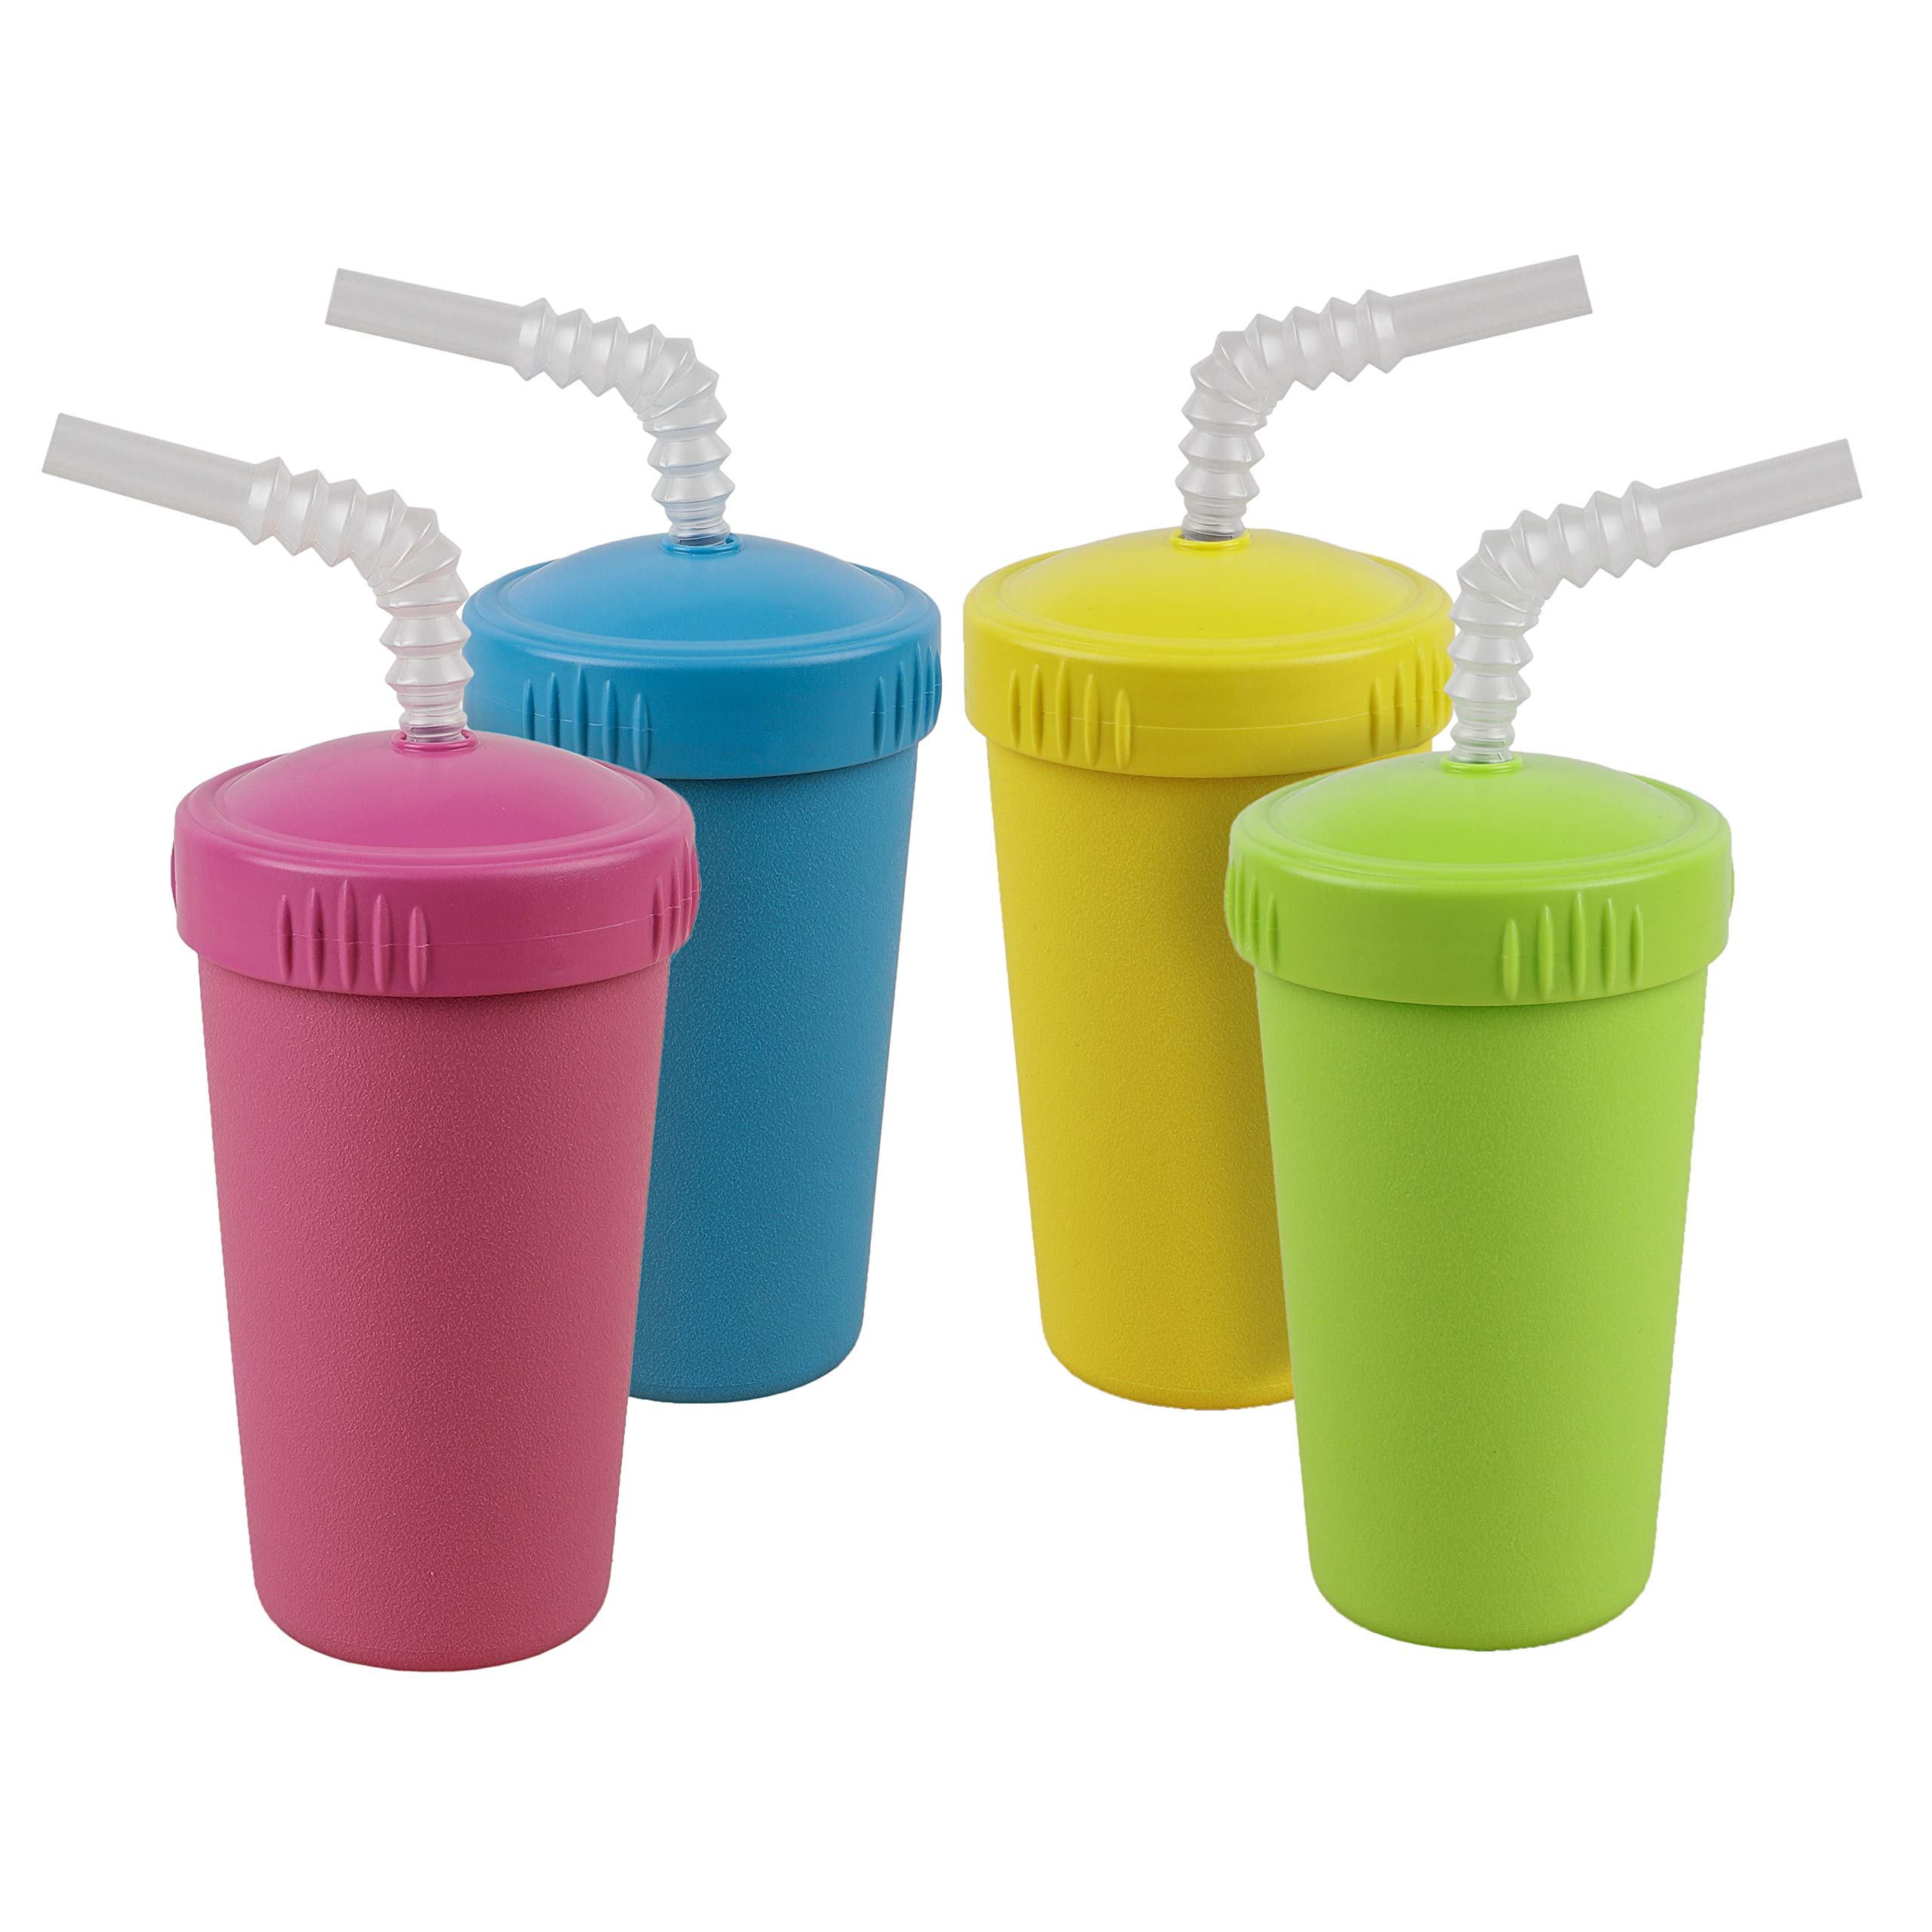 Re-Play Made in USA 4pk Straw Cups with Bendable Straw in Bright Pink, Sky Blue, Yellow and Lime Green   Made from Eco Friendly Heavyweight Recycled Milk Jugs - Virtually Indestructible (Easter+)